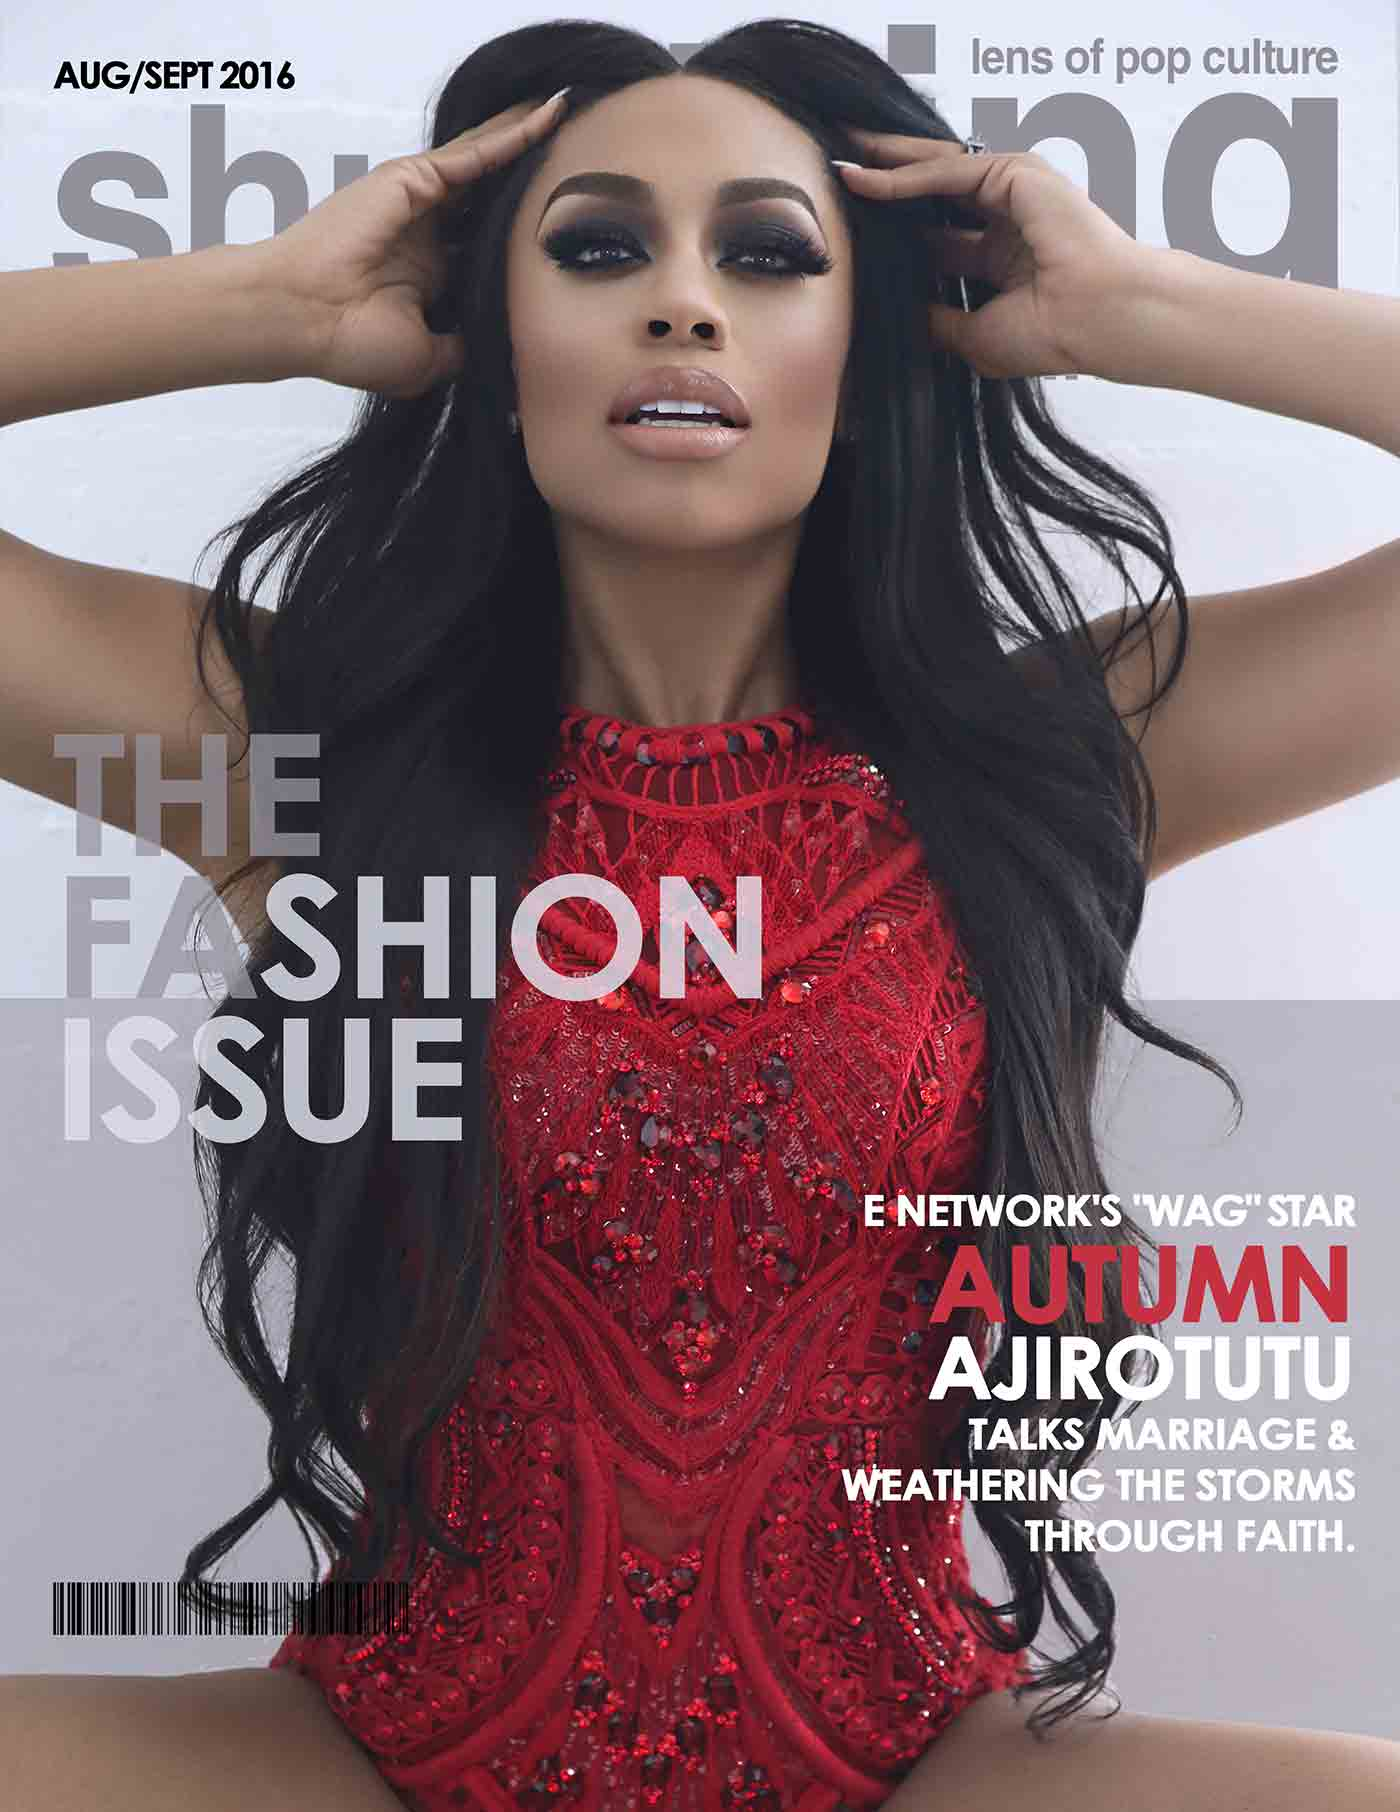 Fashion Styling: 'WAGS' Star Autumn Ajirotutu